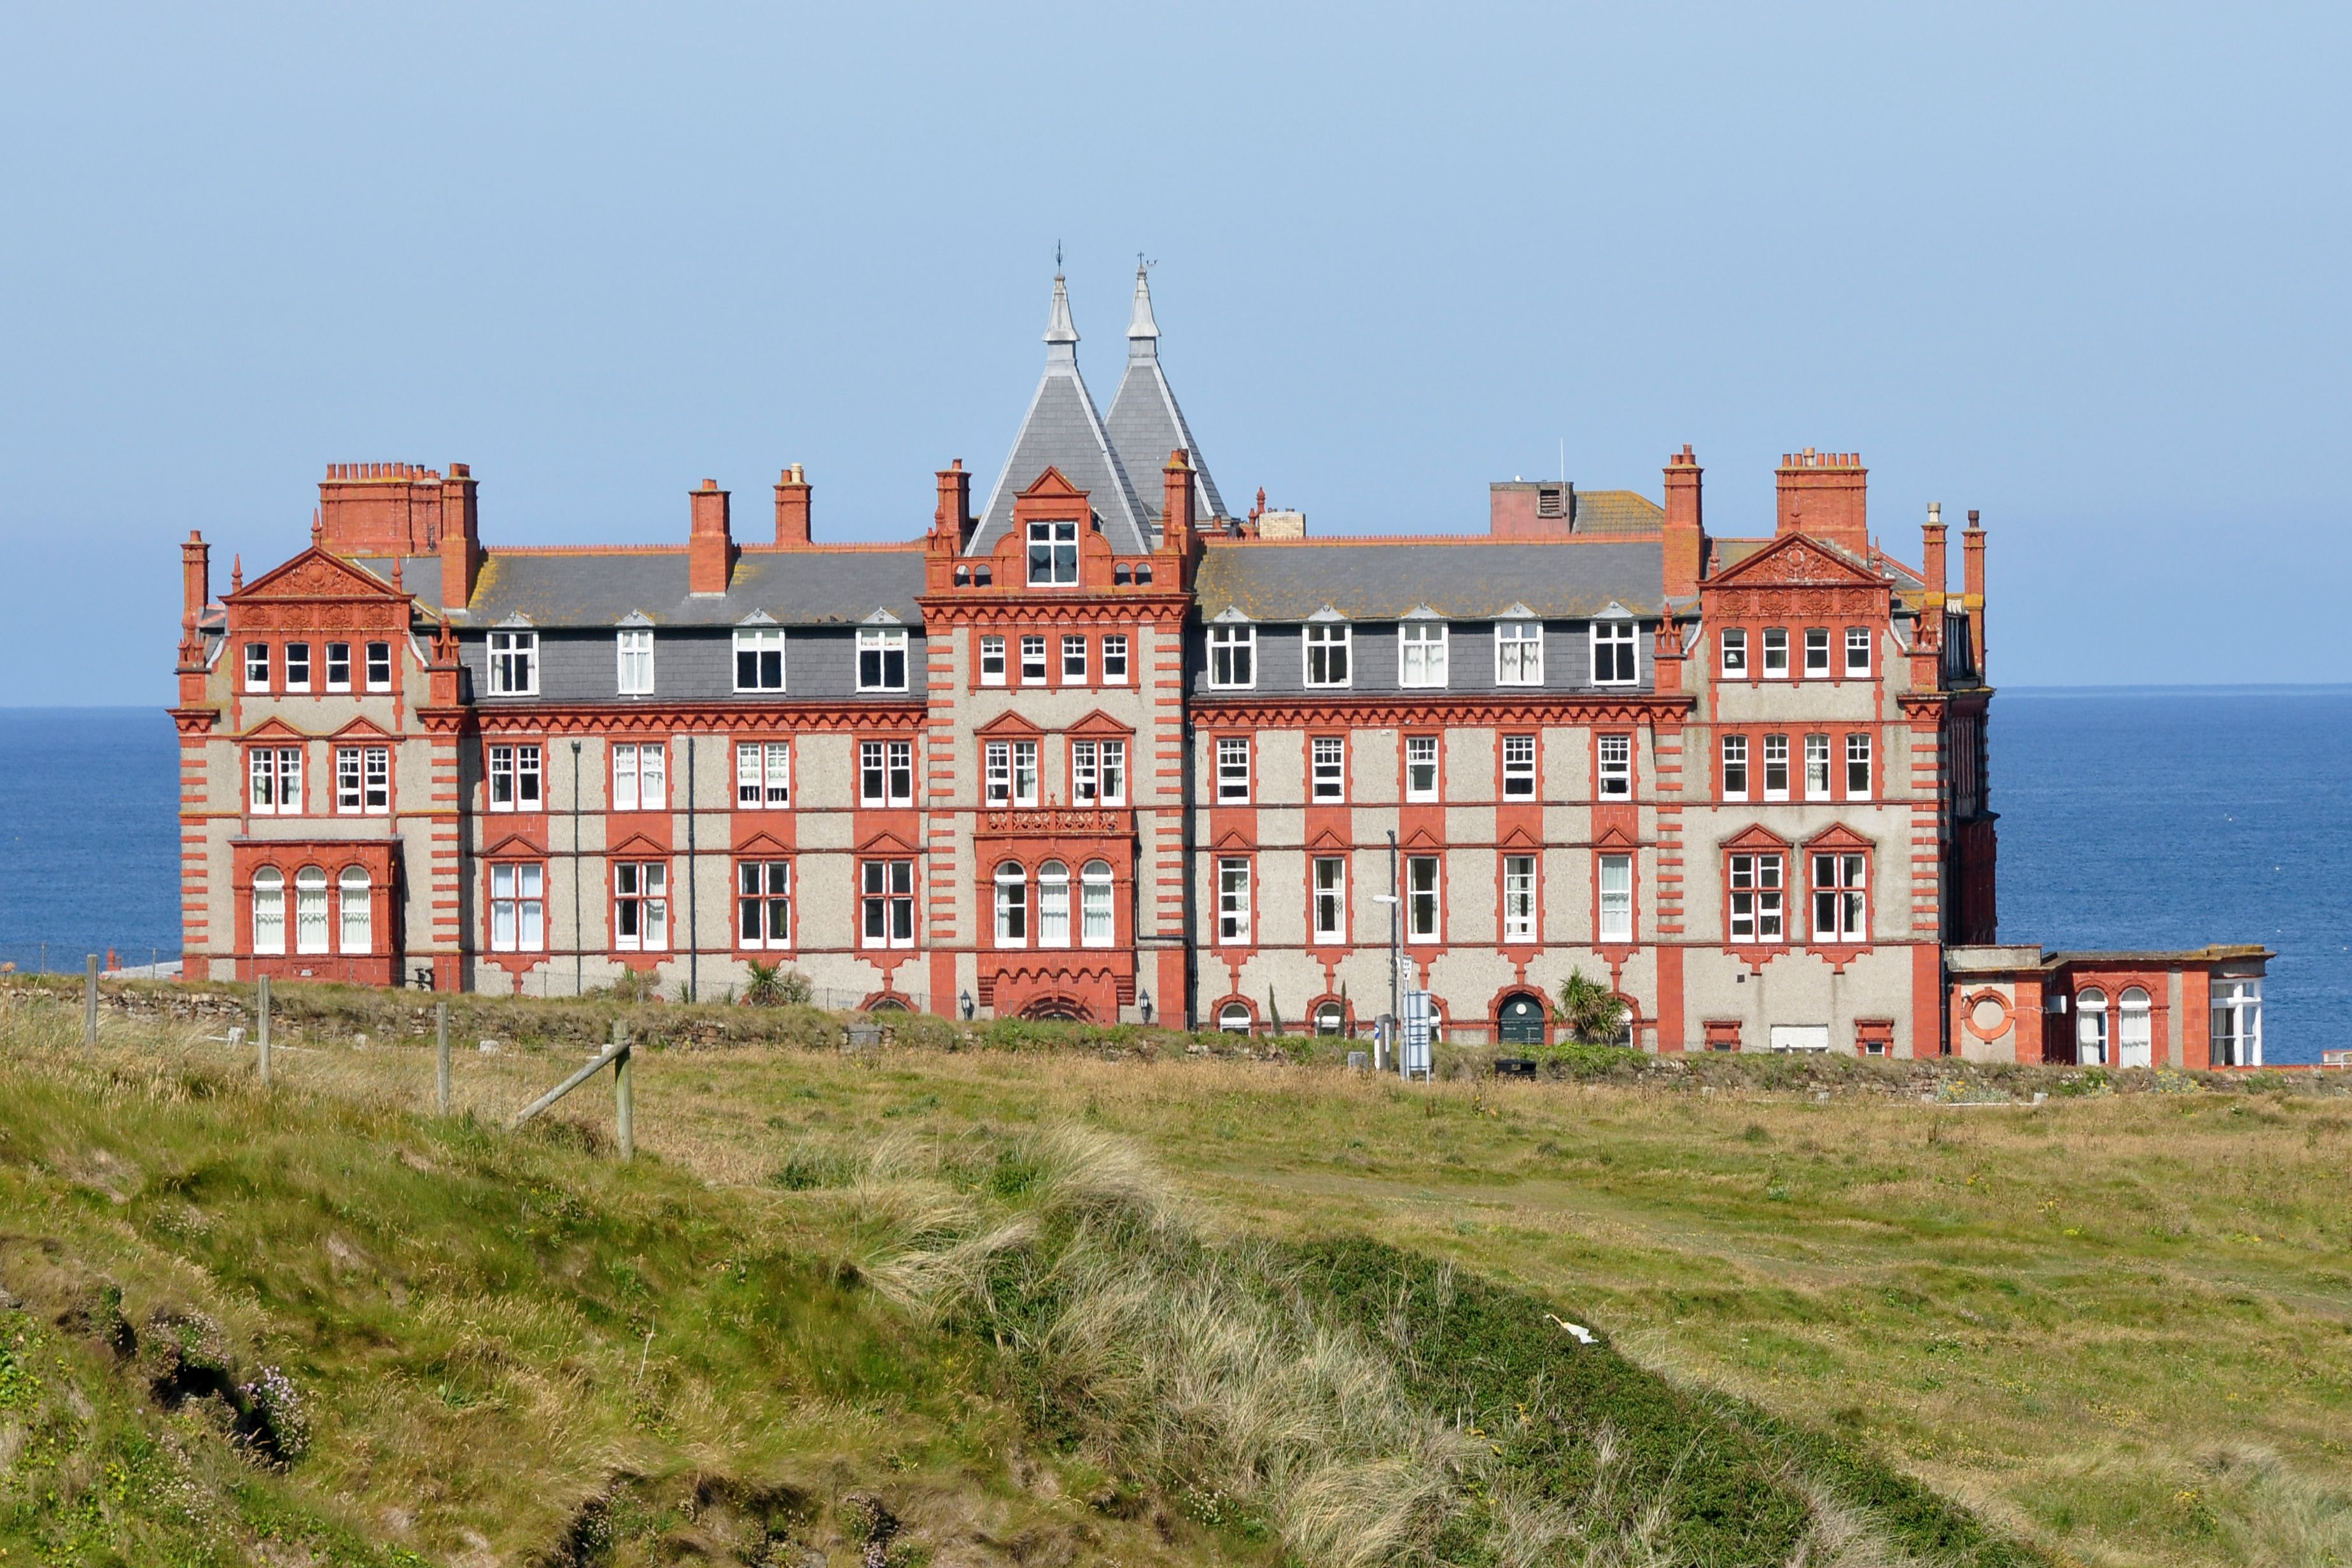 Foyer Hotel Cornwall : Headland hotel cornwall where the witches was filmed